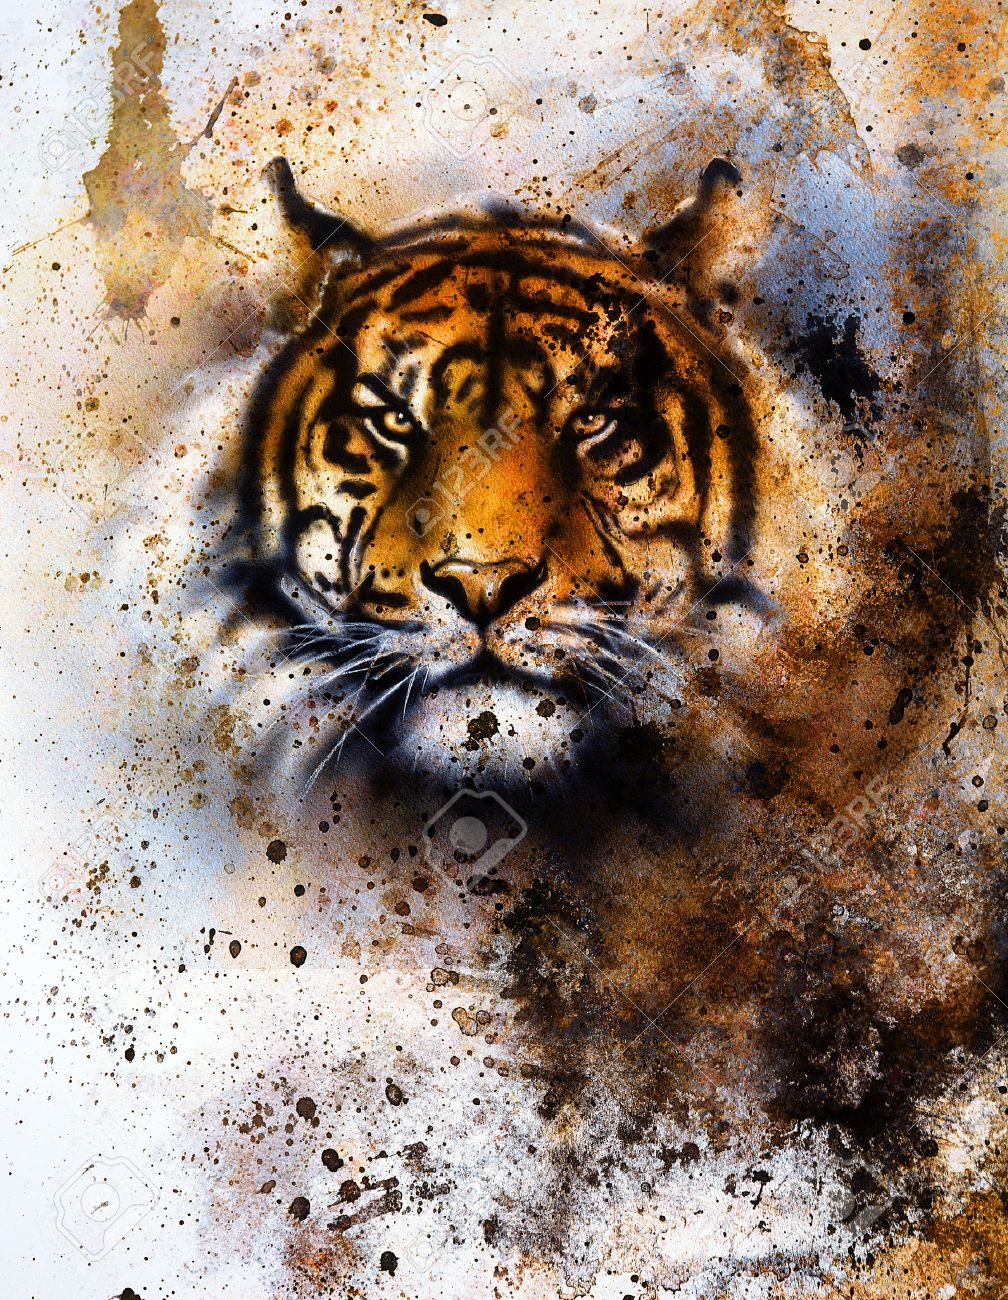 tiger collage on color abstract background rust structure stock